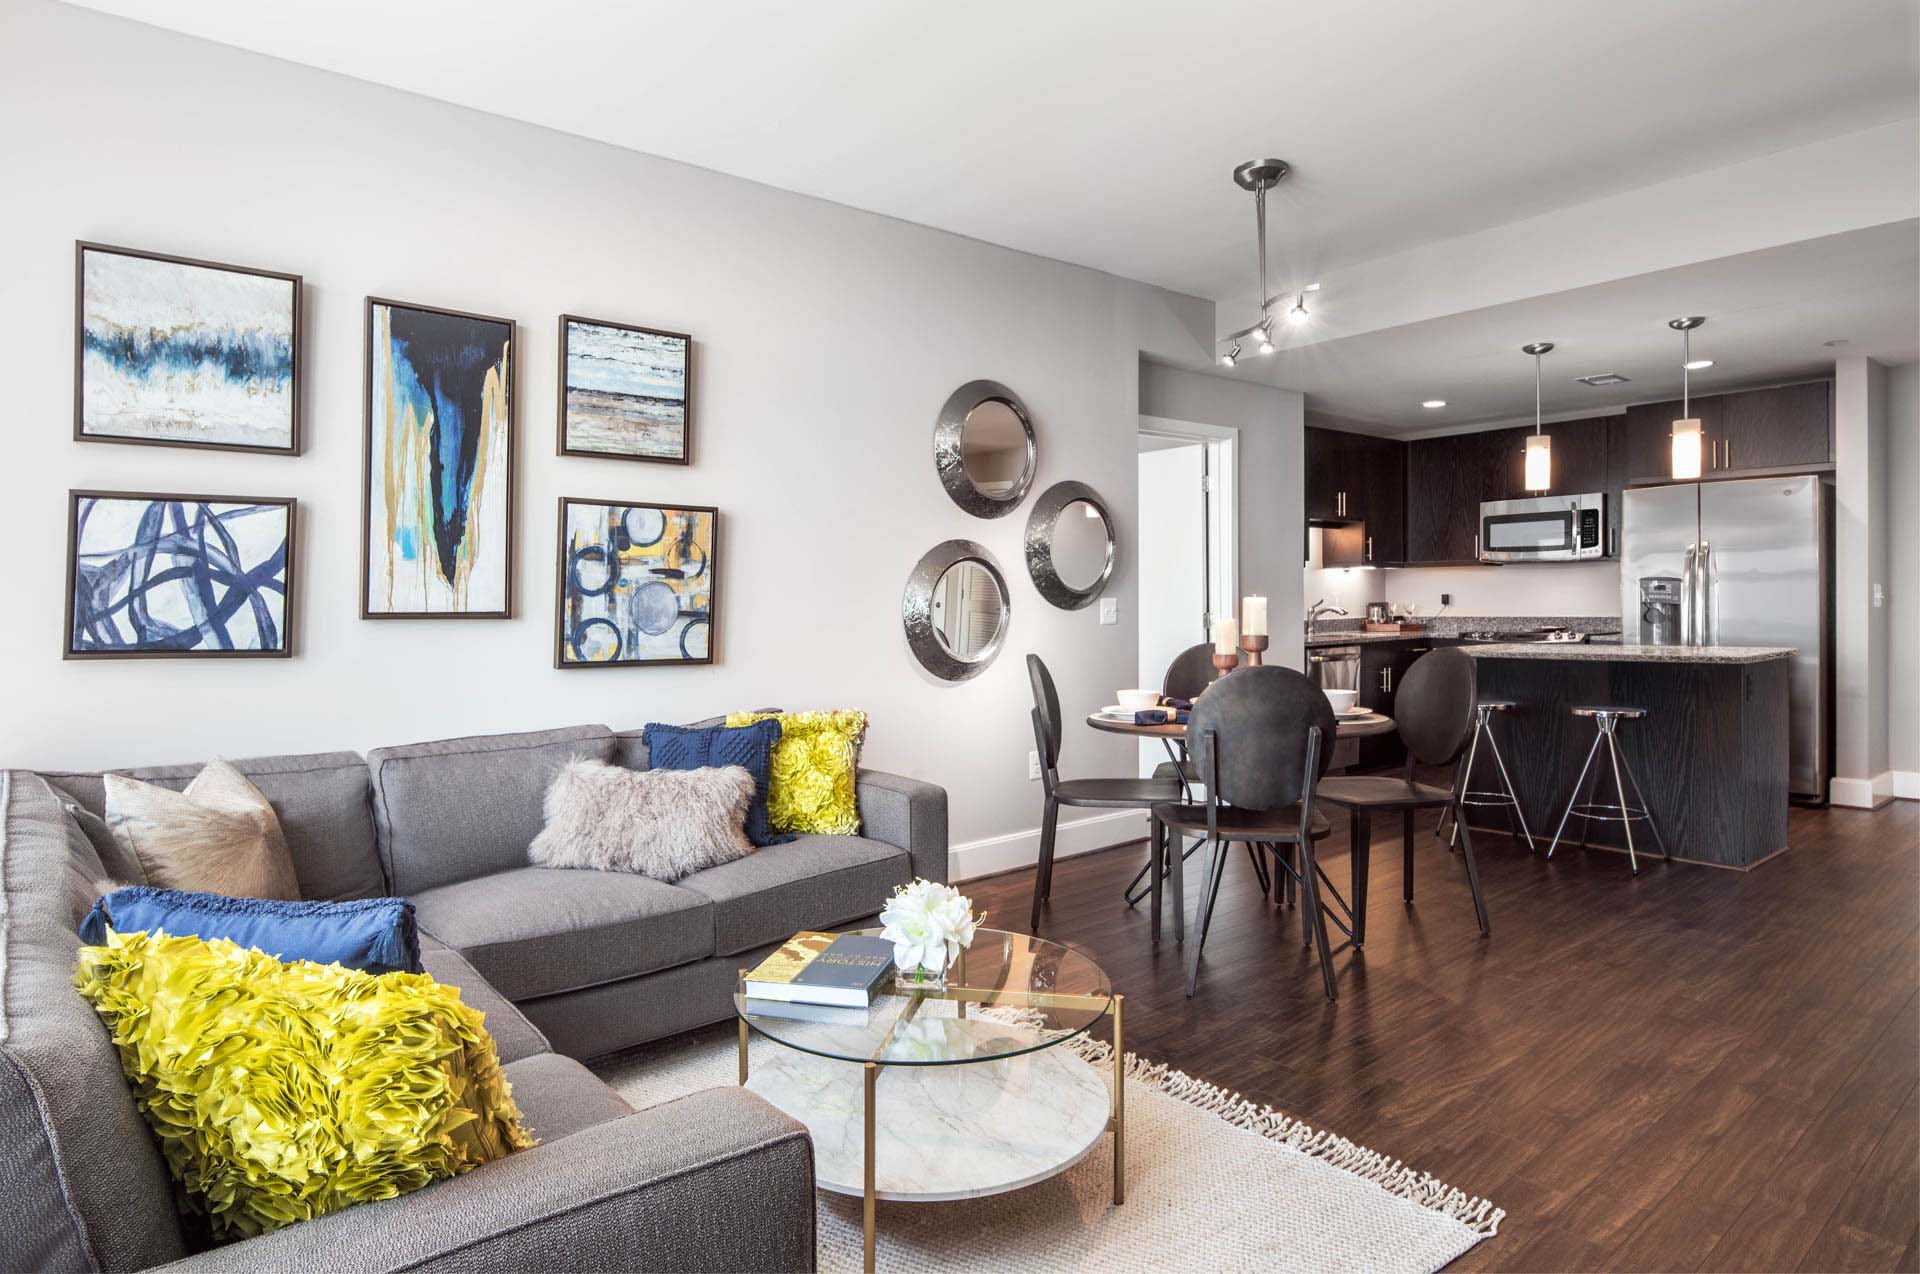 Diagonal view of tastefully decorated living room with dining and kitchen spaces beyond